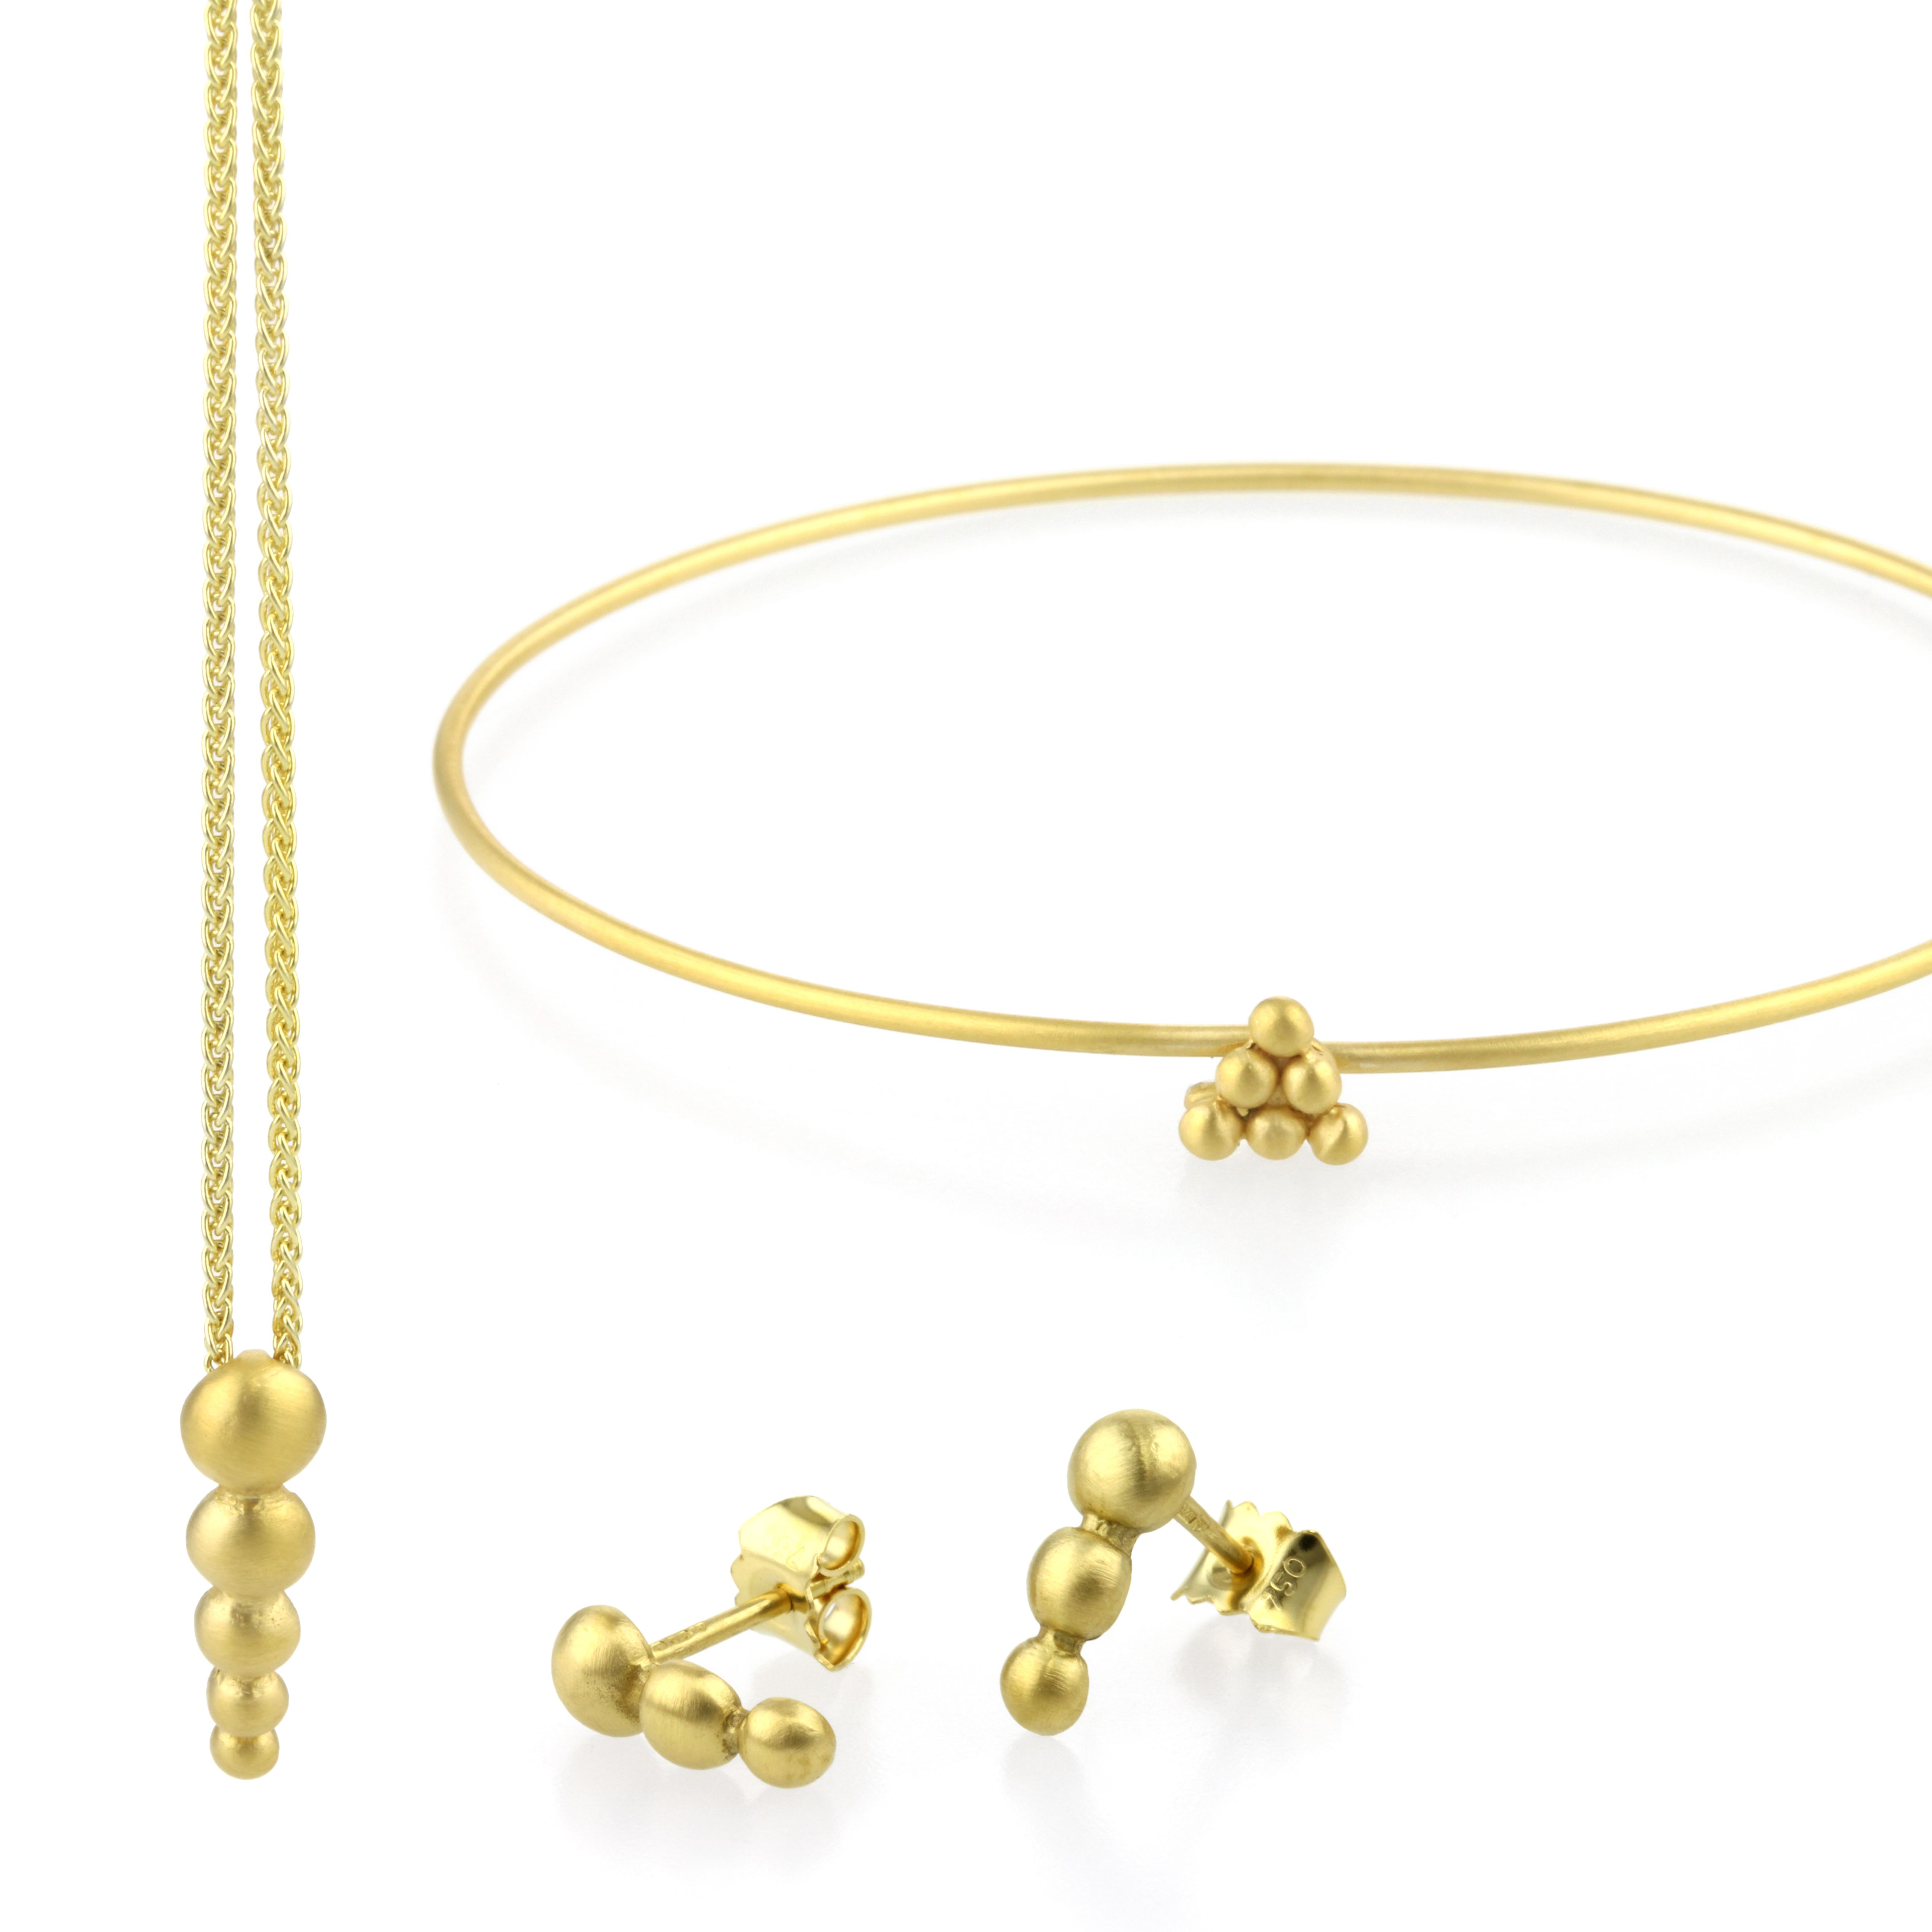 164c01e701a551 Visit us on stand S50. 18ct yellow gold #jewellery, inspired by our local  golden city of #Bath. SULIS earrings and pendants are handmade using  elegant ...